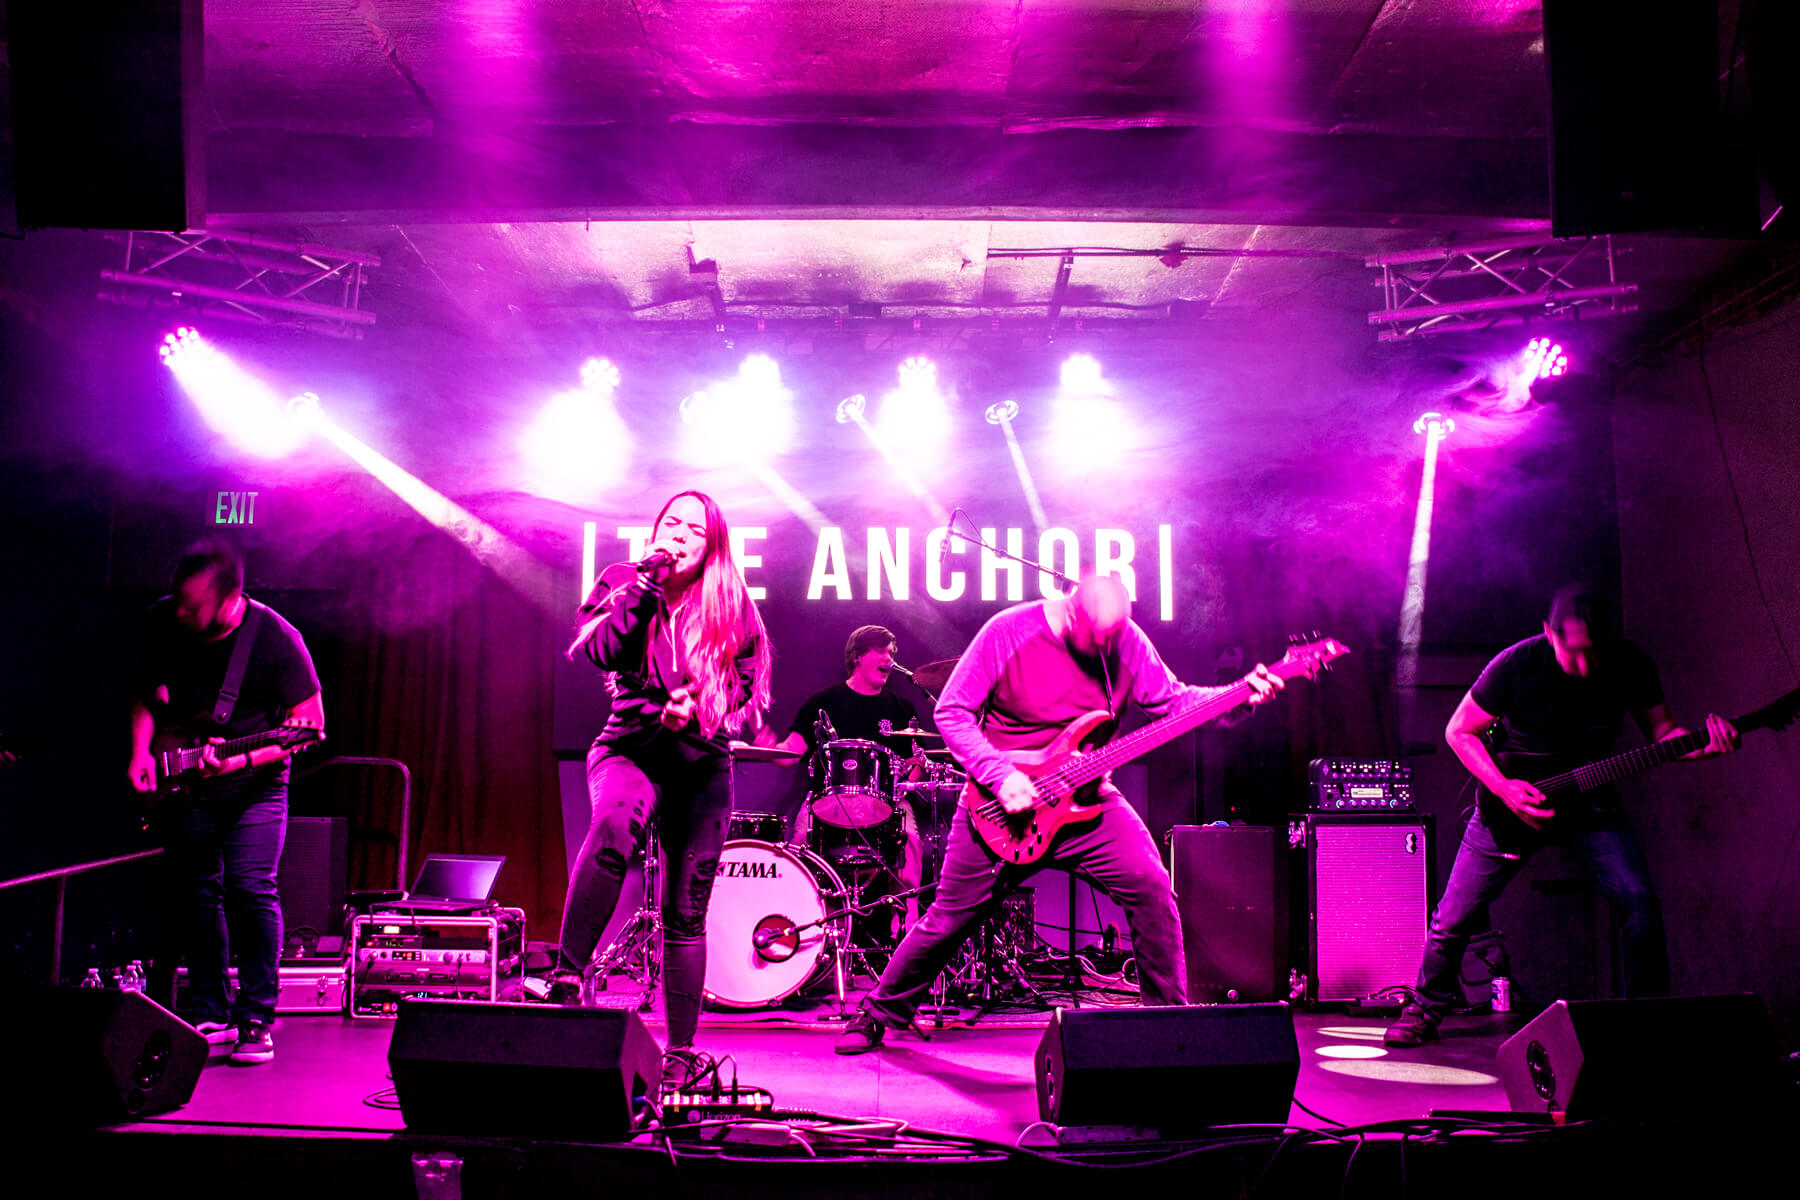 The Anchor 1